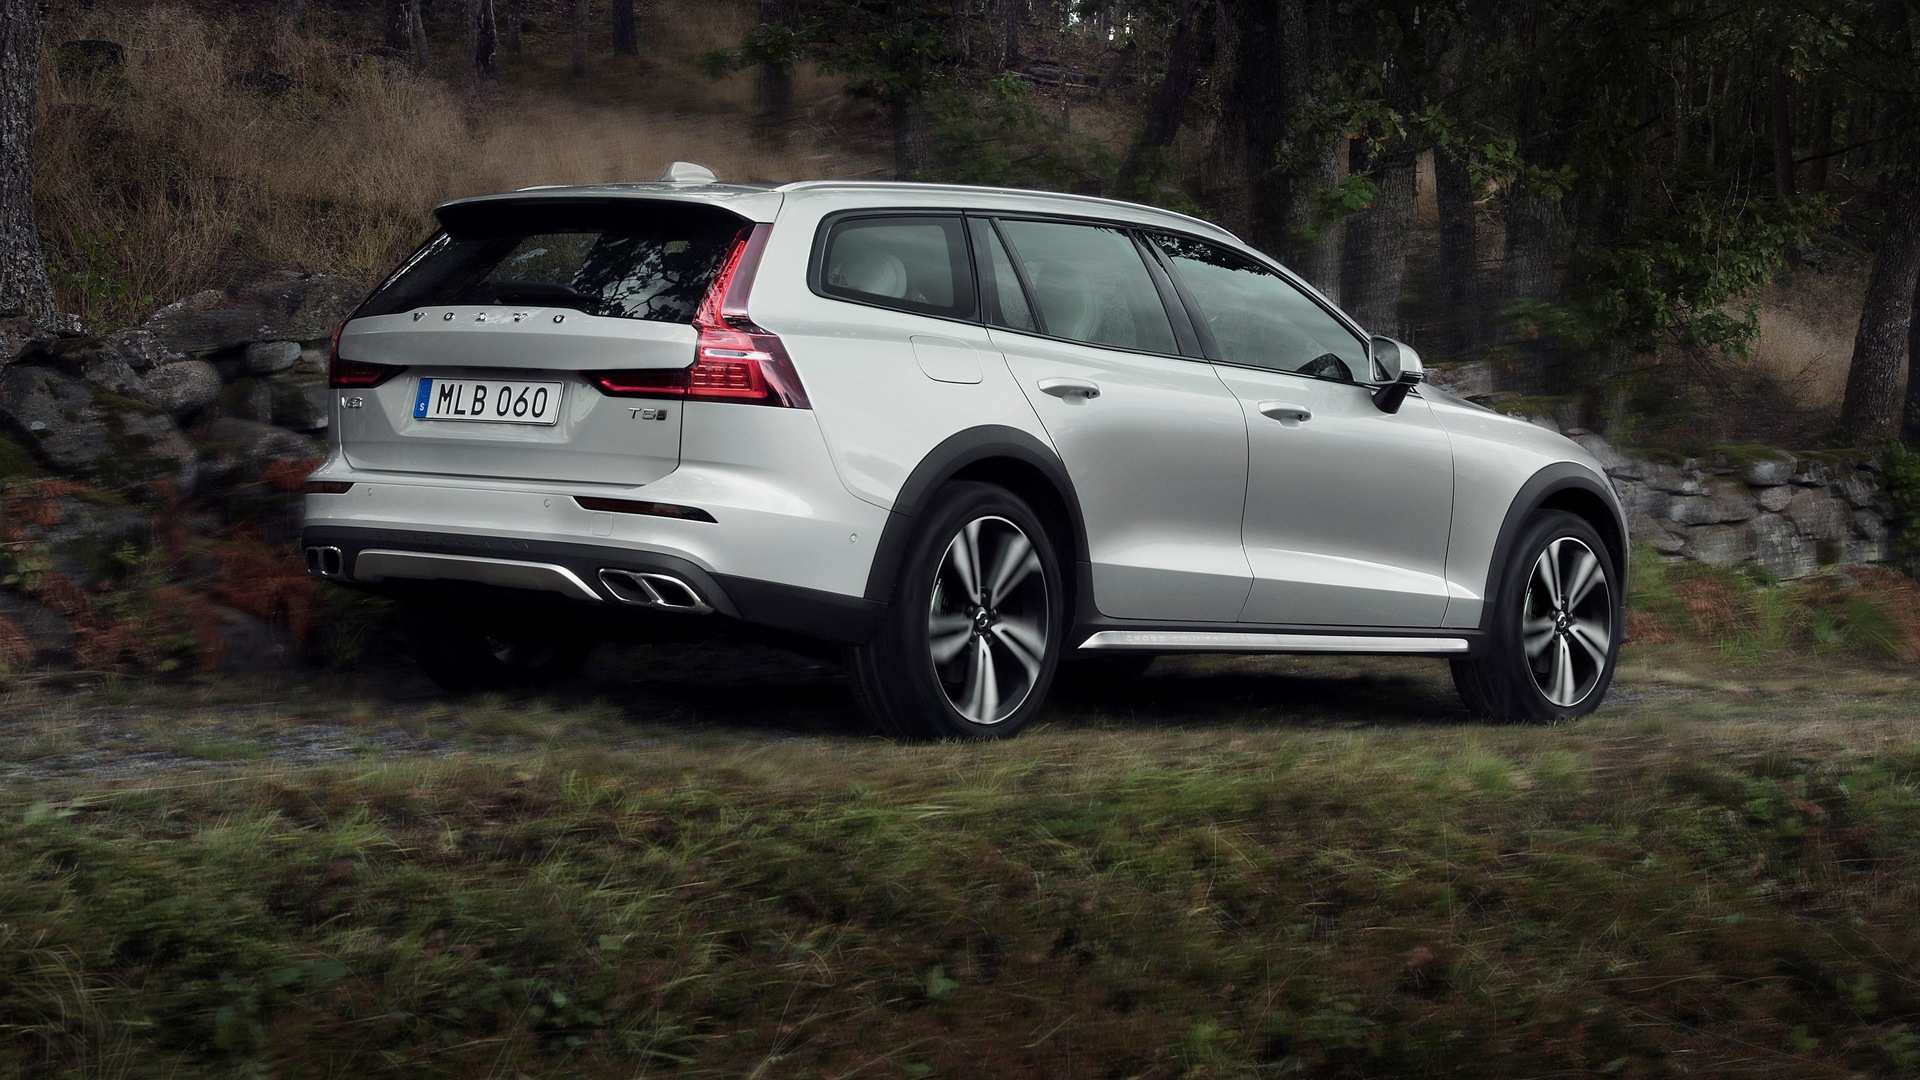 53 Gallery of Volvo 2020 Station Wagon Specs with Volvo 2020 Station Wagon